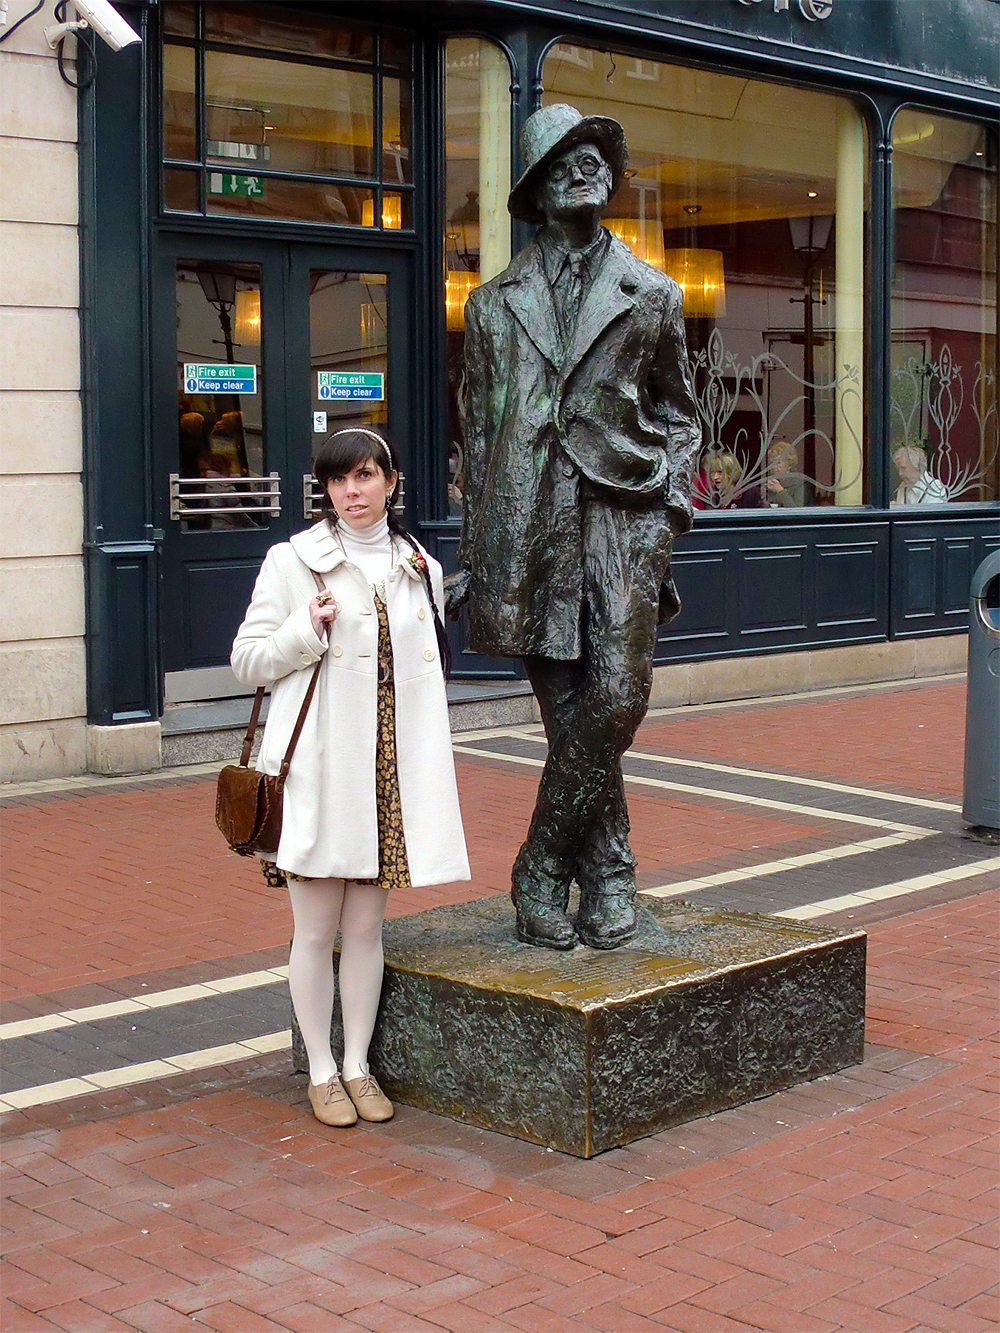 Statue of James Joyce on North Earl Street - Dublin, Ireland.